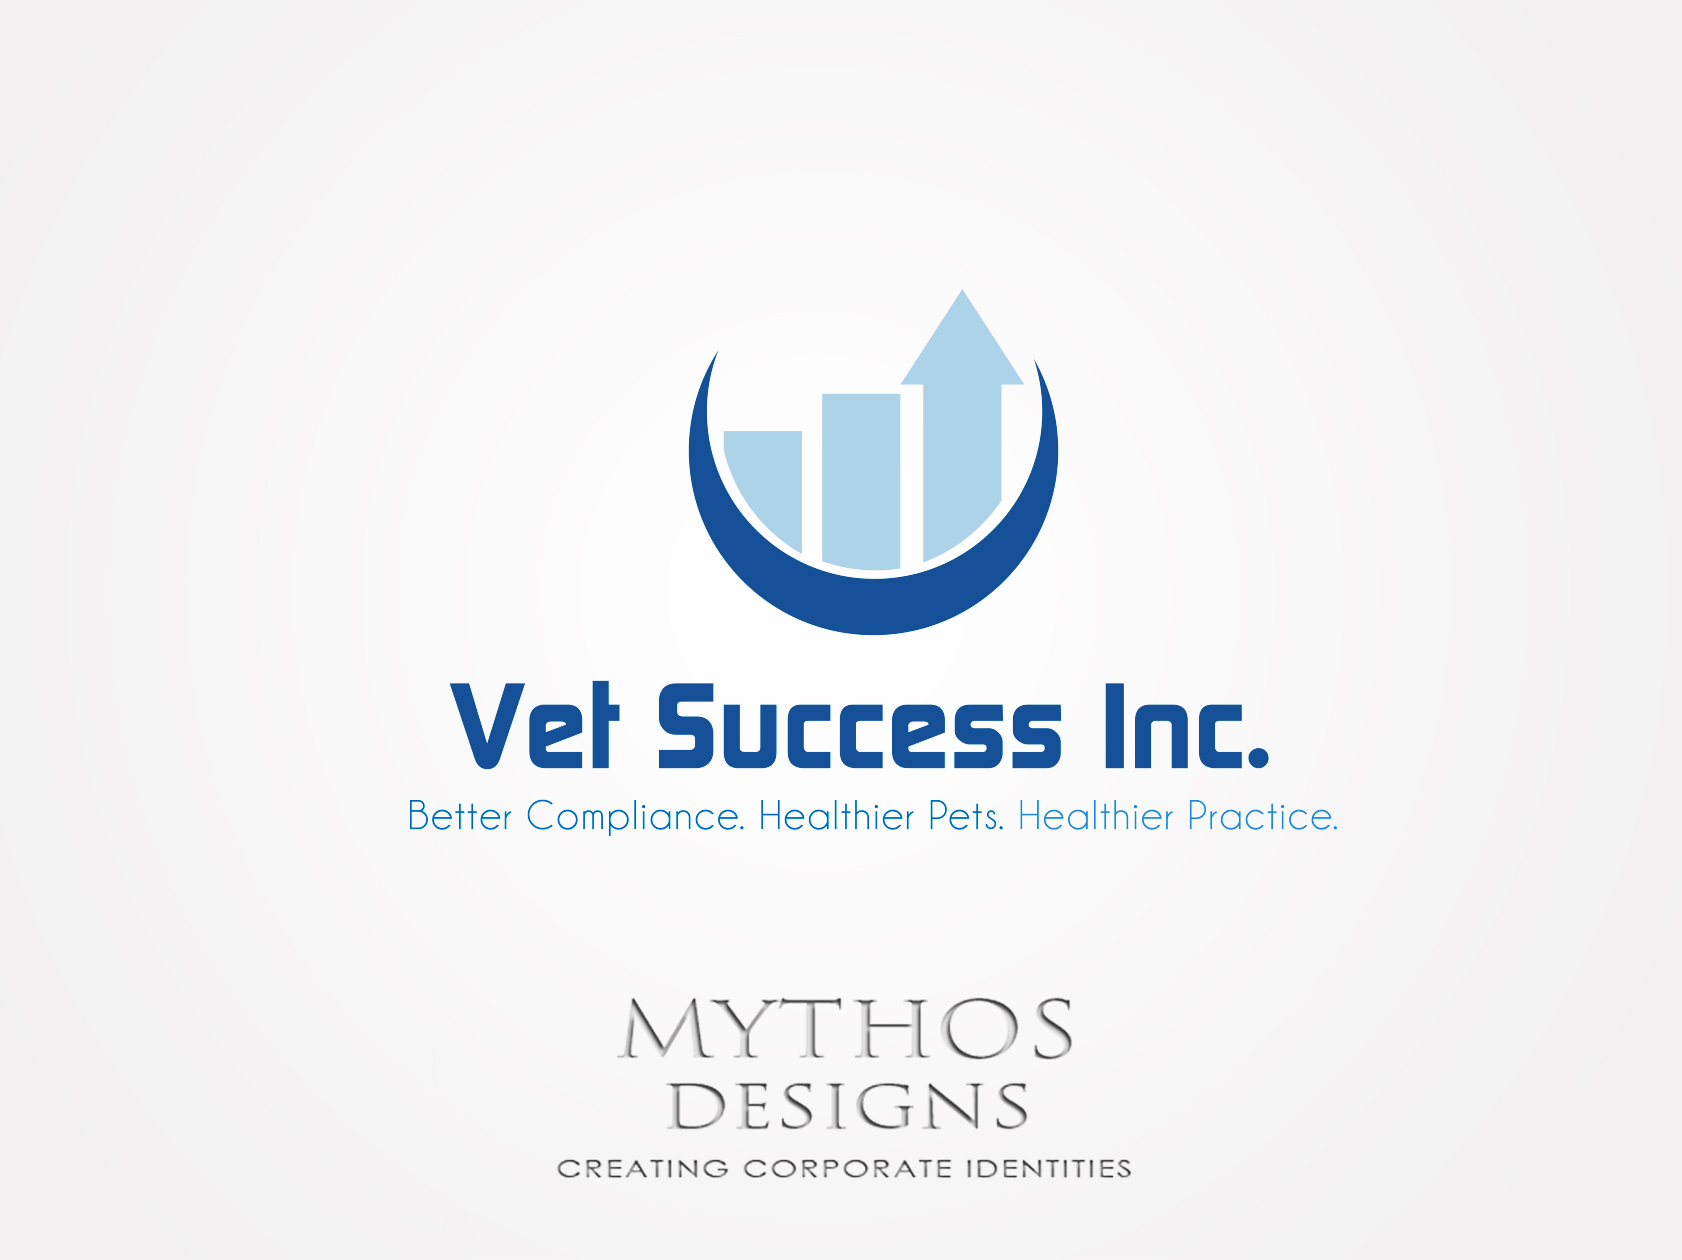 Logo Design by Mythos Designs - Entry No. 60 in the Logo Design Contest Imaginative Logo Design for Vet Success Inc..